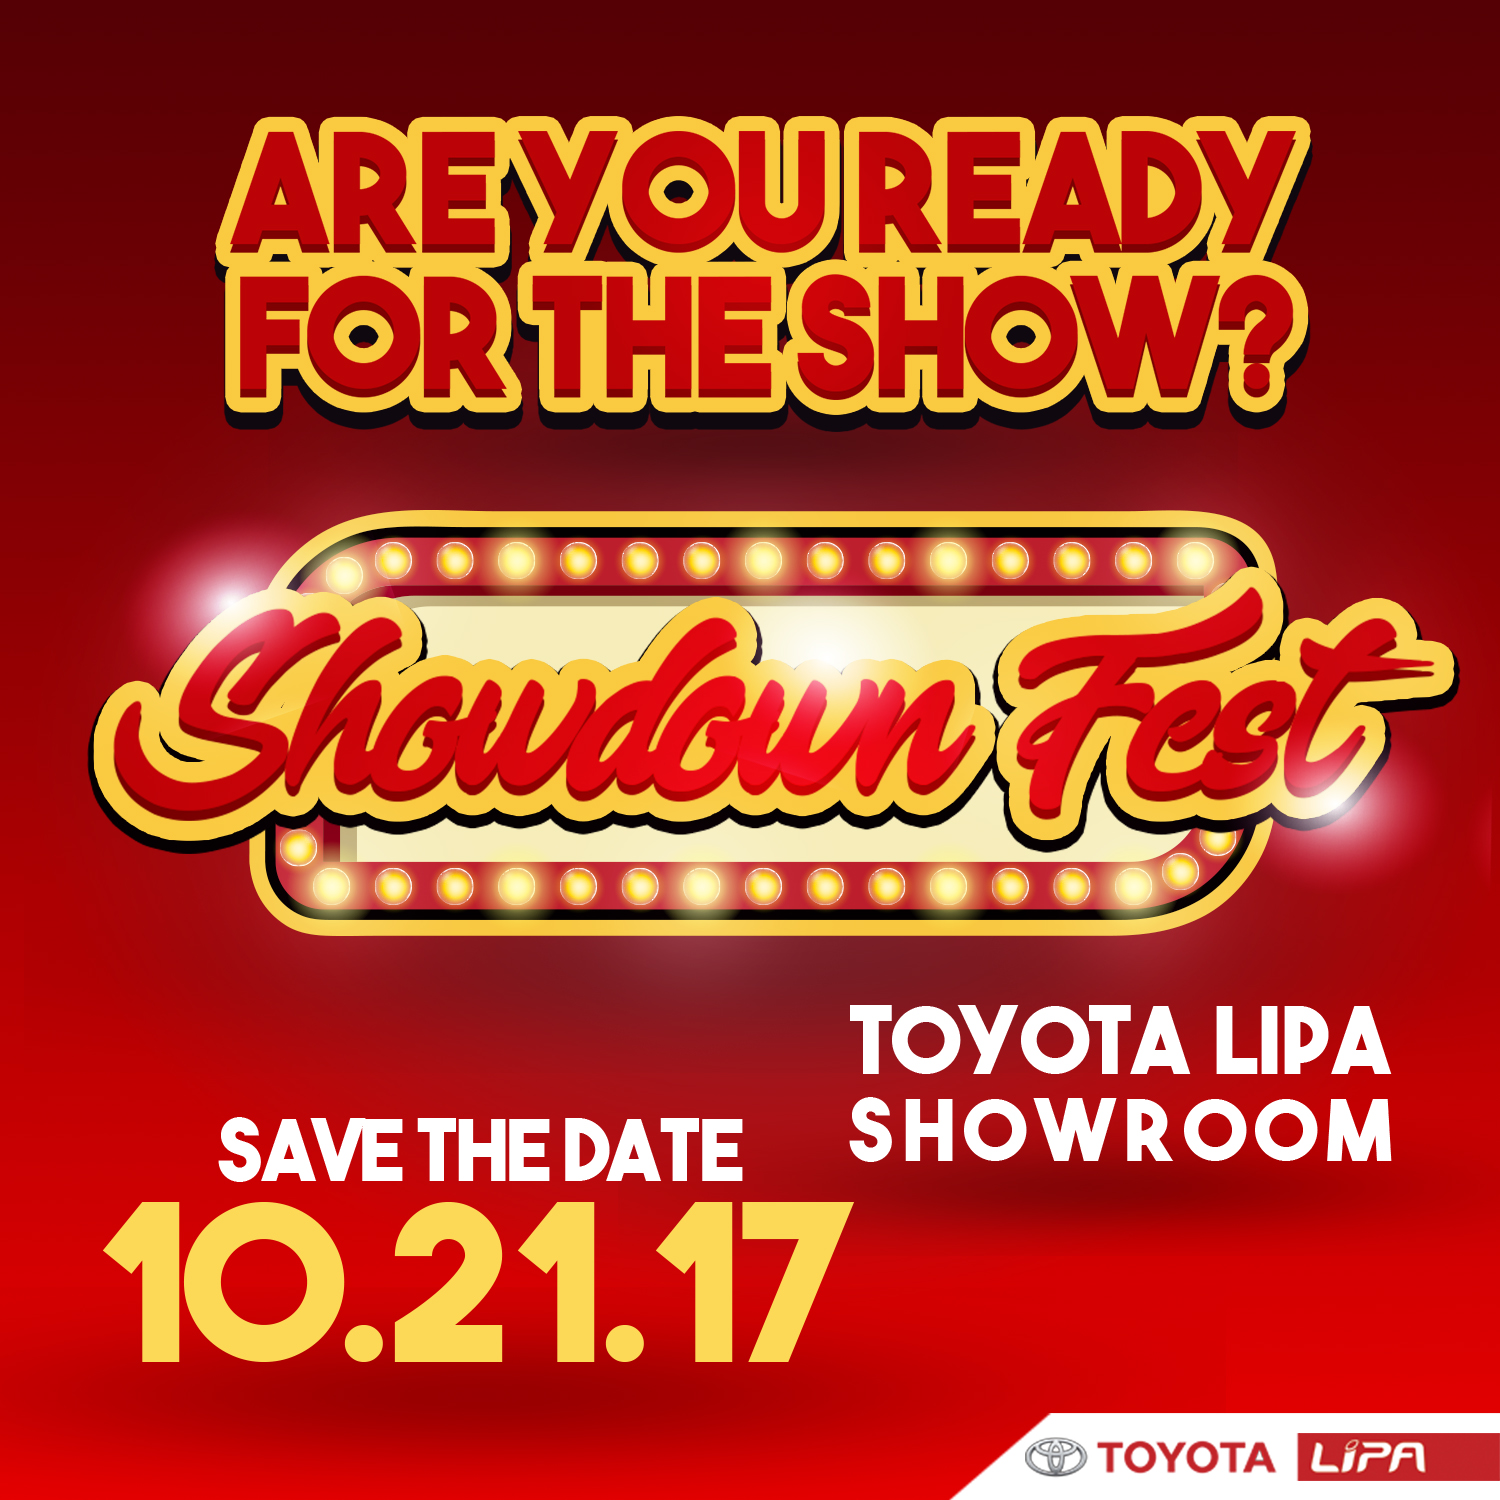 Celebrate Octoberfest at Toyota Lipa with their Showdown Fest